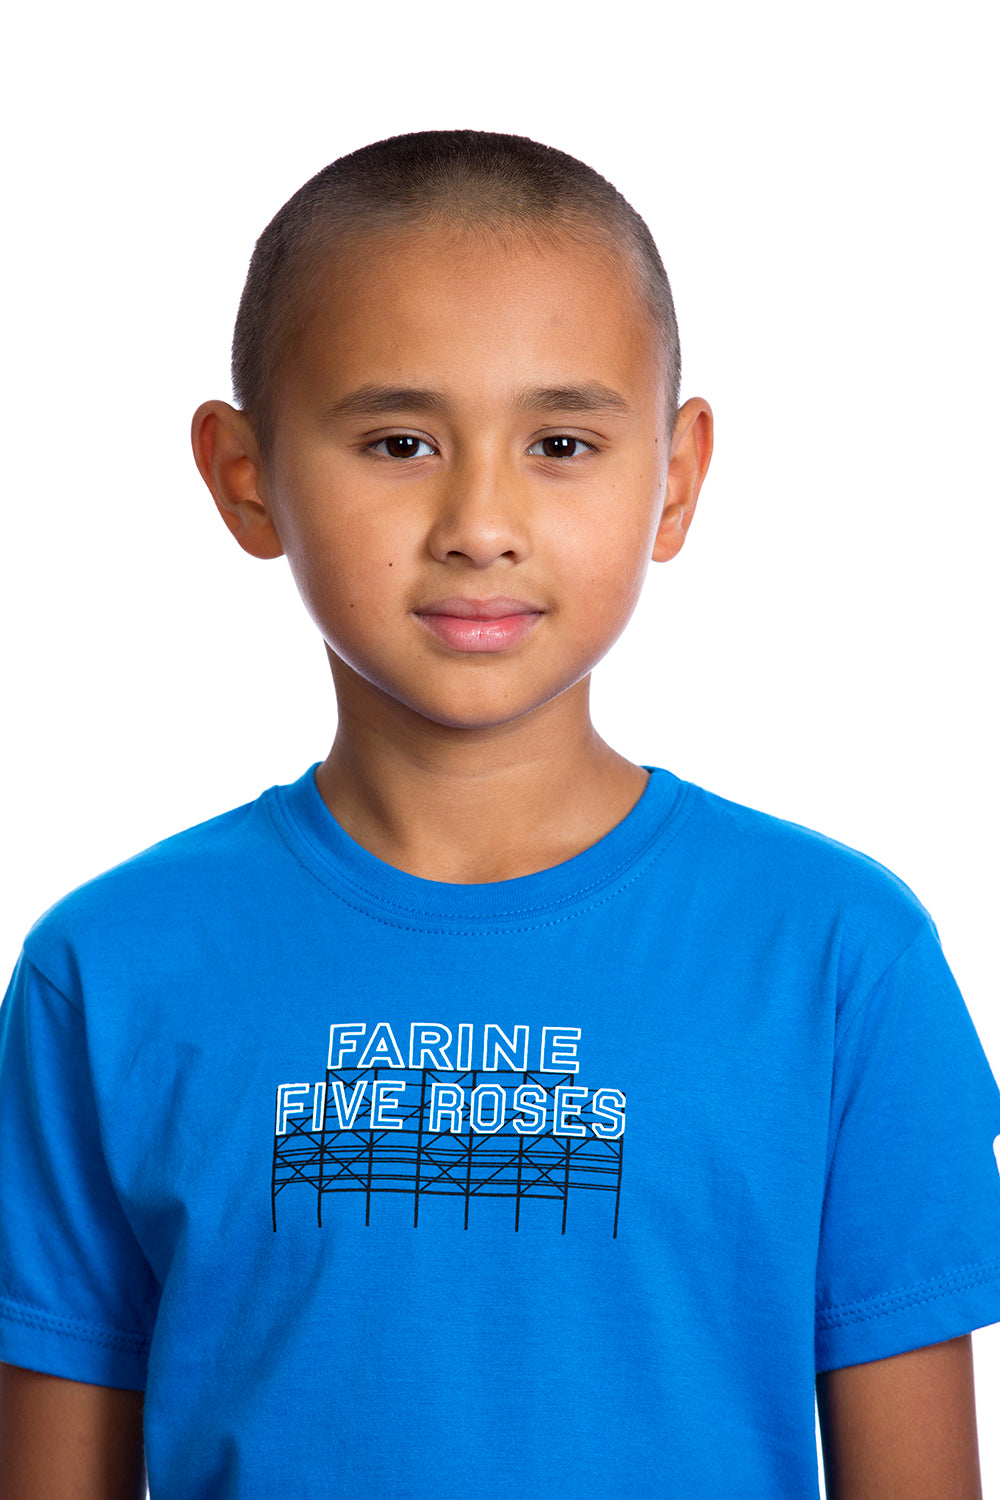 Kids Farine Five Roses Shirt Graphic Tee Tshirt | Organic Blue Bleu